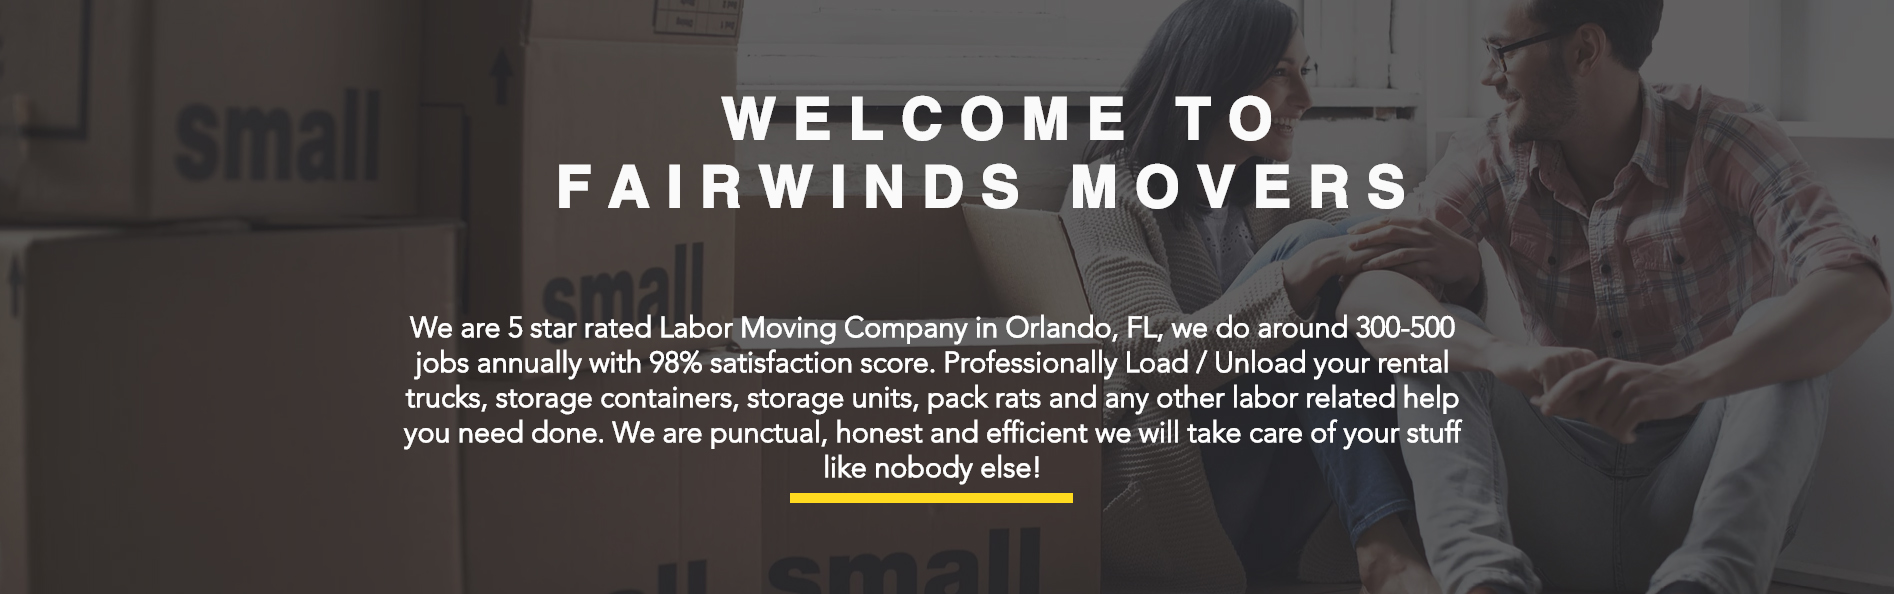 Moving Service Orlando FL